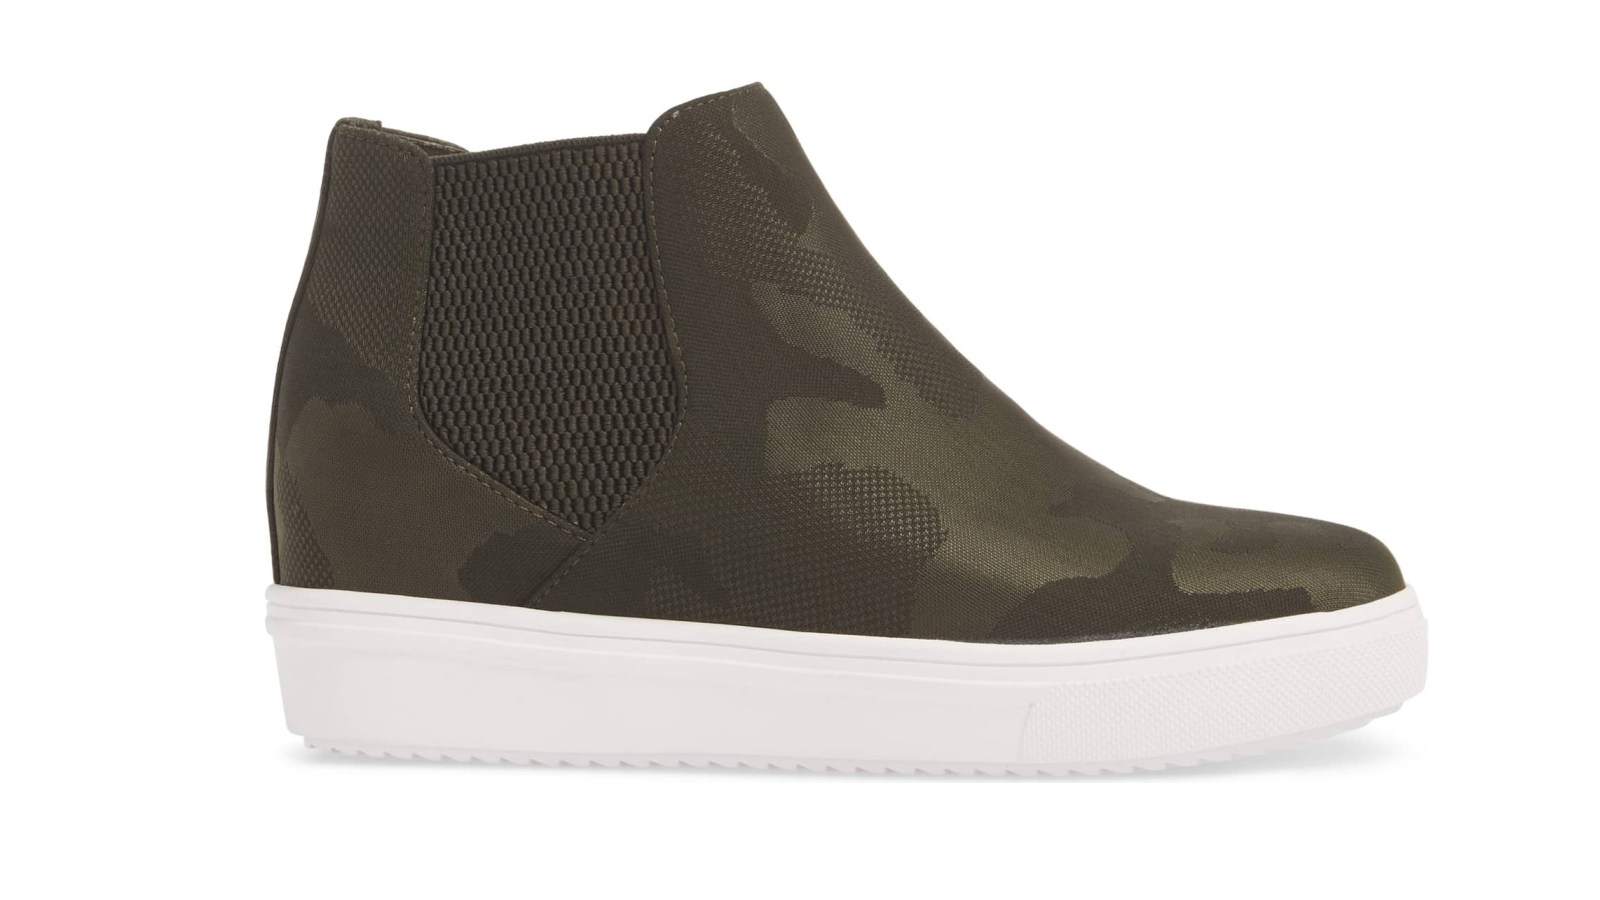 4d56b65397d Shop Steve Madden Wedge Sneakers on Sale at Nordstrom